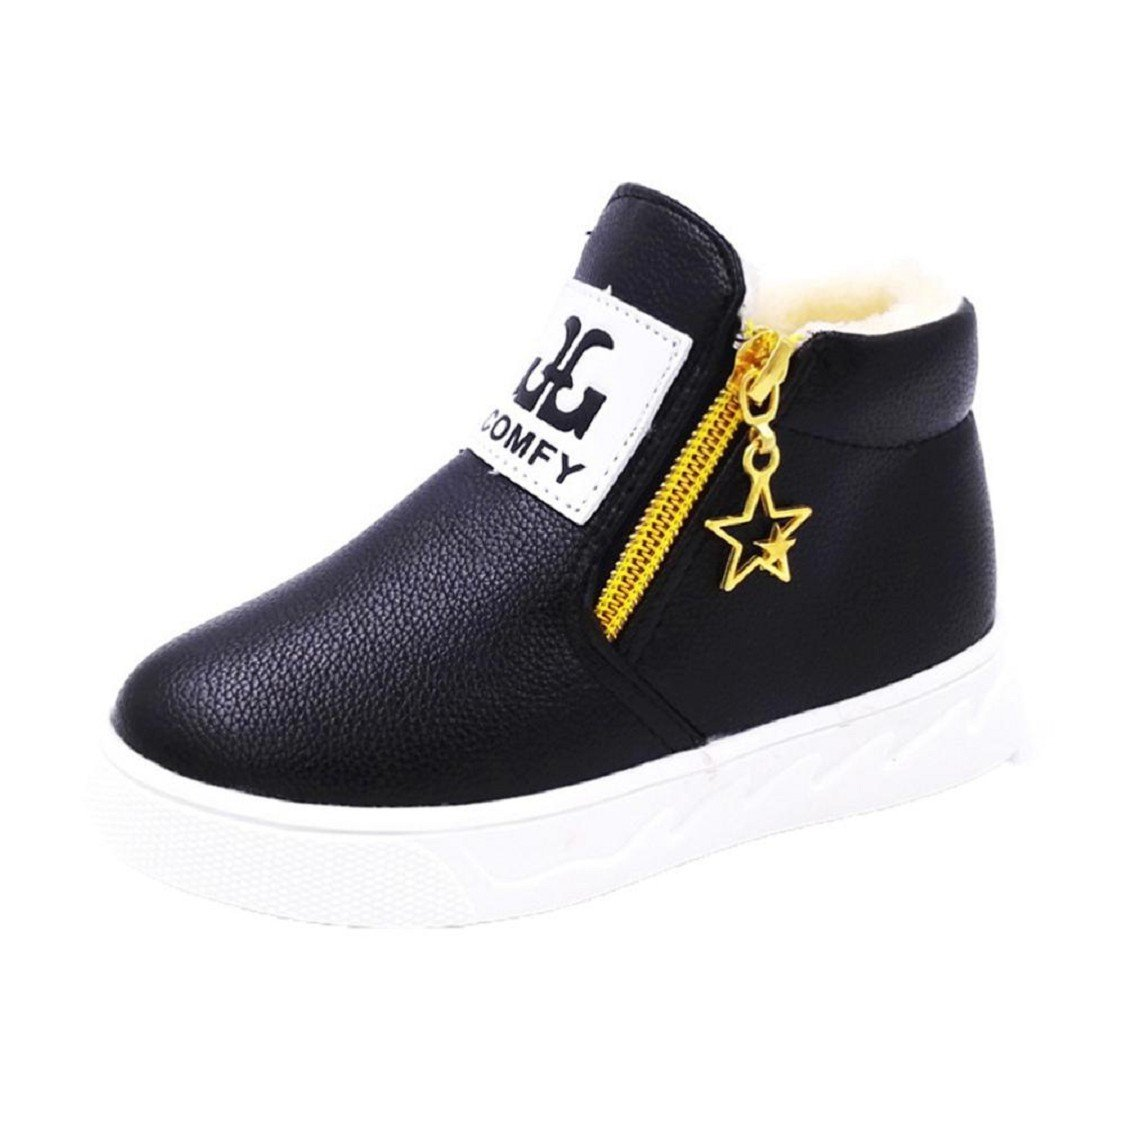 Naladoo Children Casual Sport Boy Girls Fashion Martin Boots Sneakers Autumn Shoes (5.5 Years Old, Black)